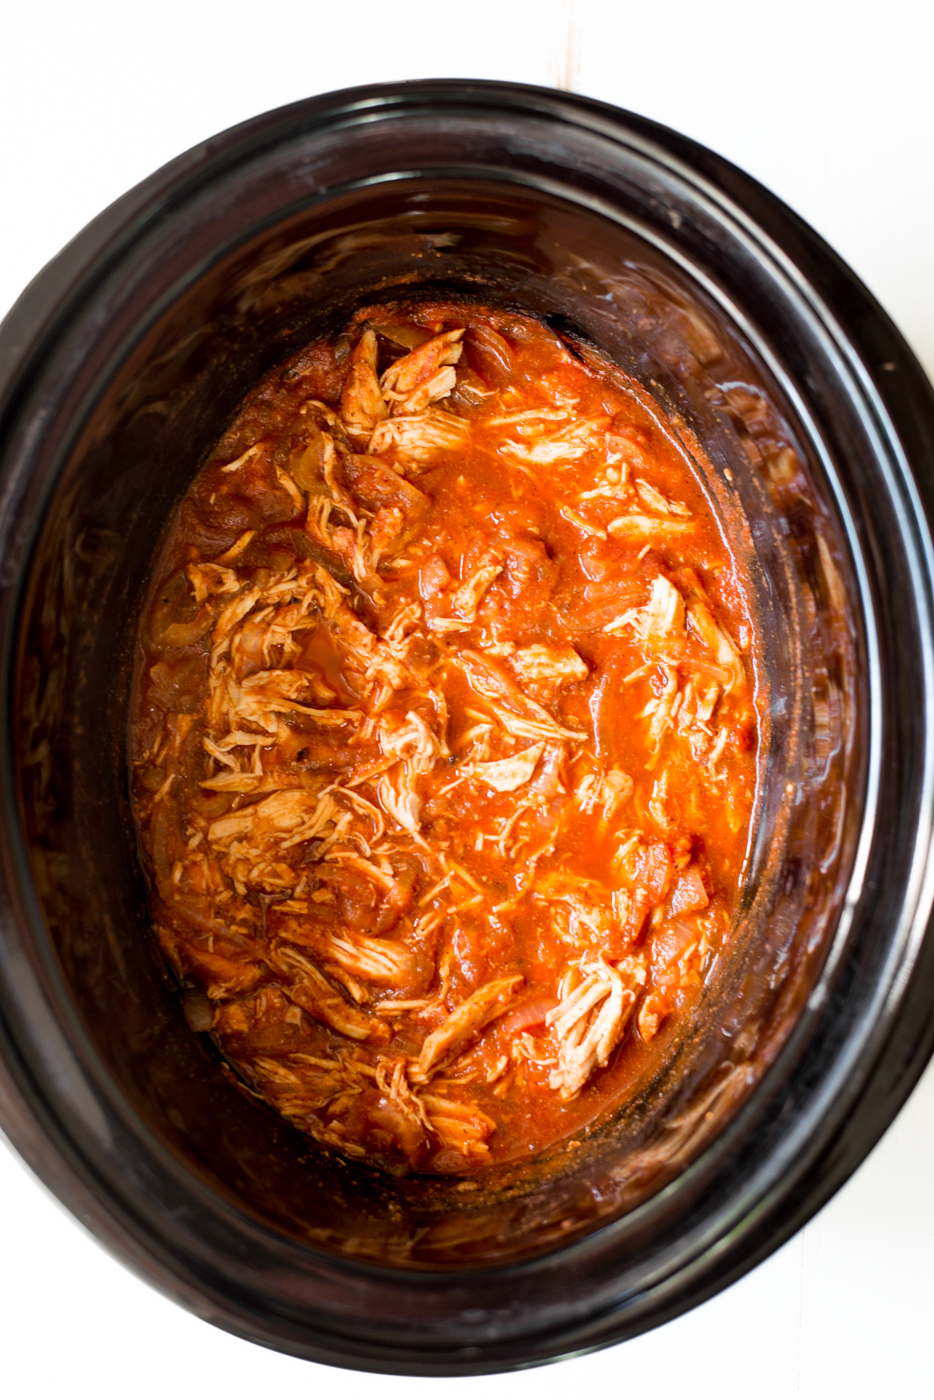 Easy and versatile 6-Ingredient Slow Cooker Enchilada Chicken is a totally simple, completely delicious weeknight crockpot recipe that everyone will love! A healthy, gluten-free, dairy-free recipe. #realfoodwholelife #crockpot #slowcooker #crockpotrecipe #slowcookerrecipe #glutenfree #dairyfree #whole30